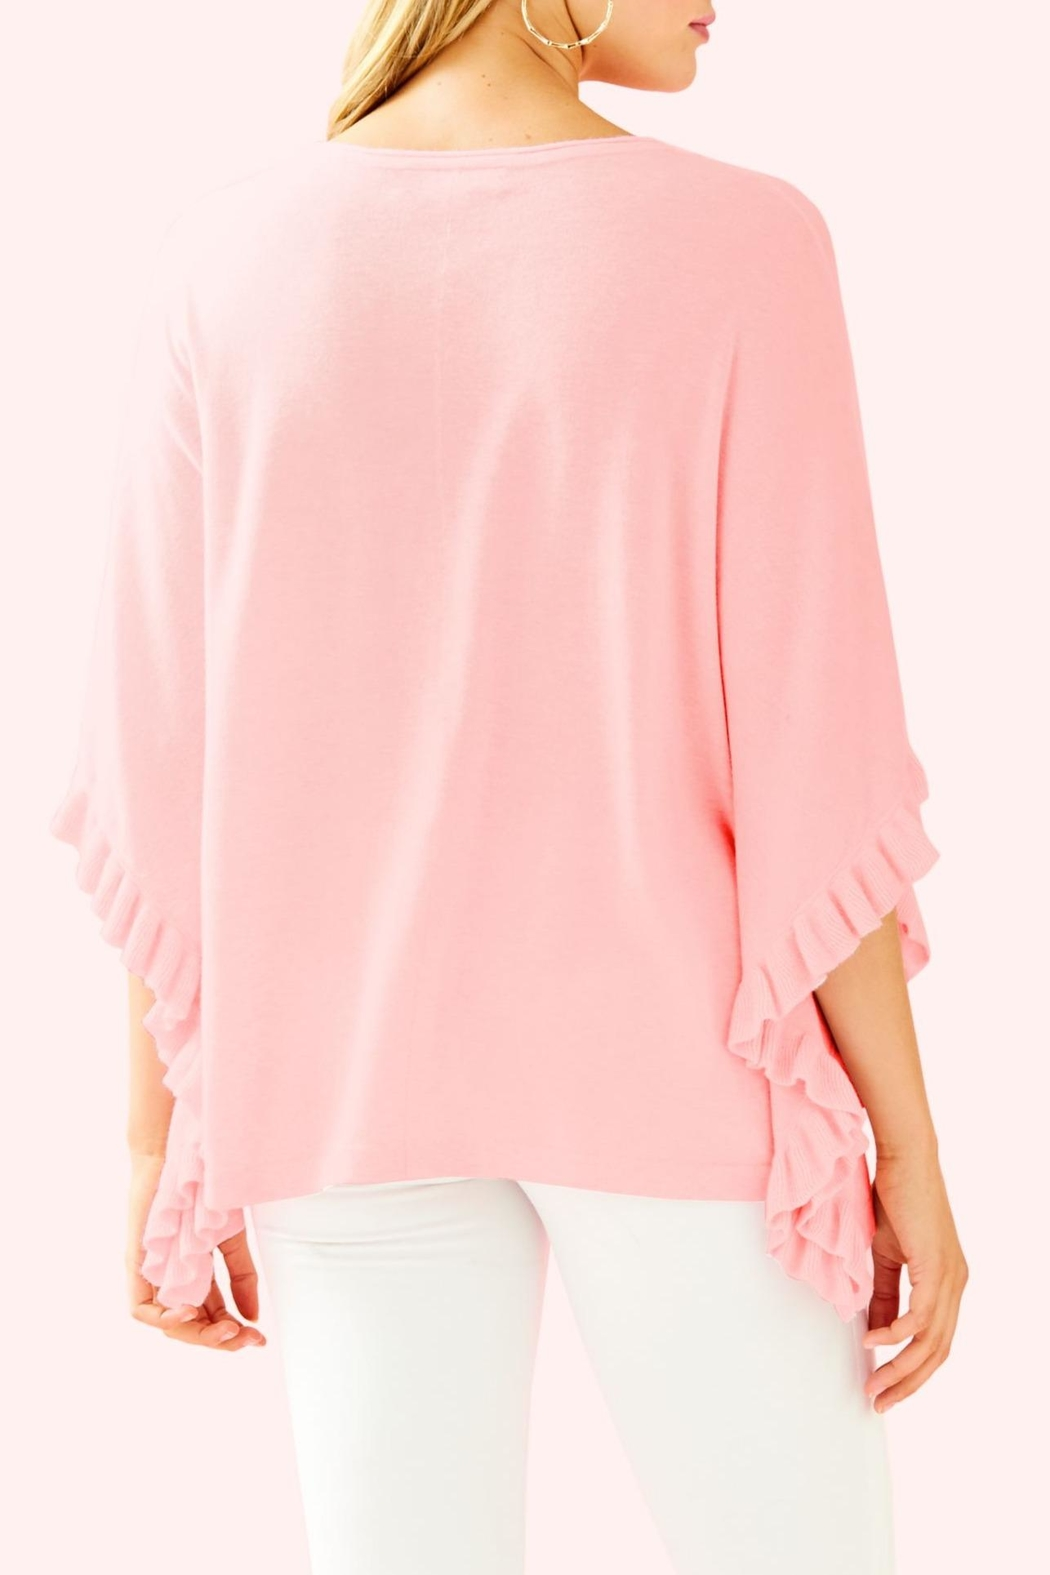 Lilly Pulitzer Lune Sweater - Front Full Image